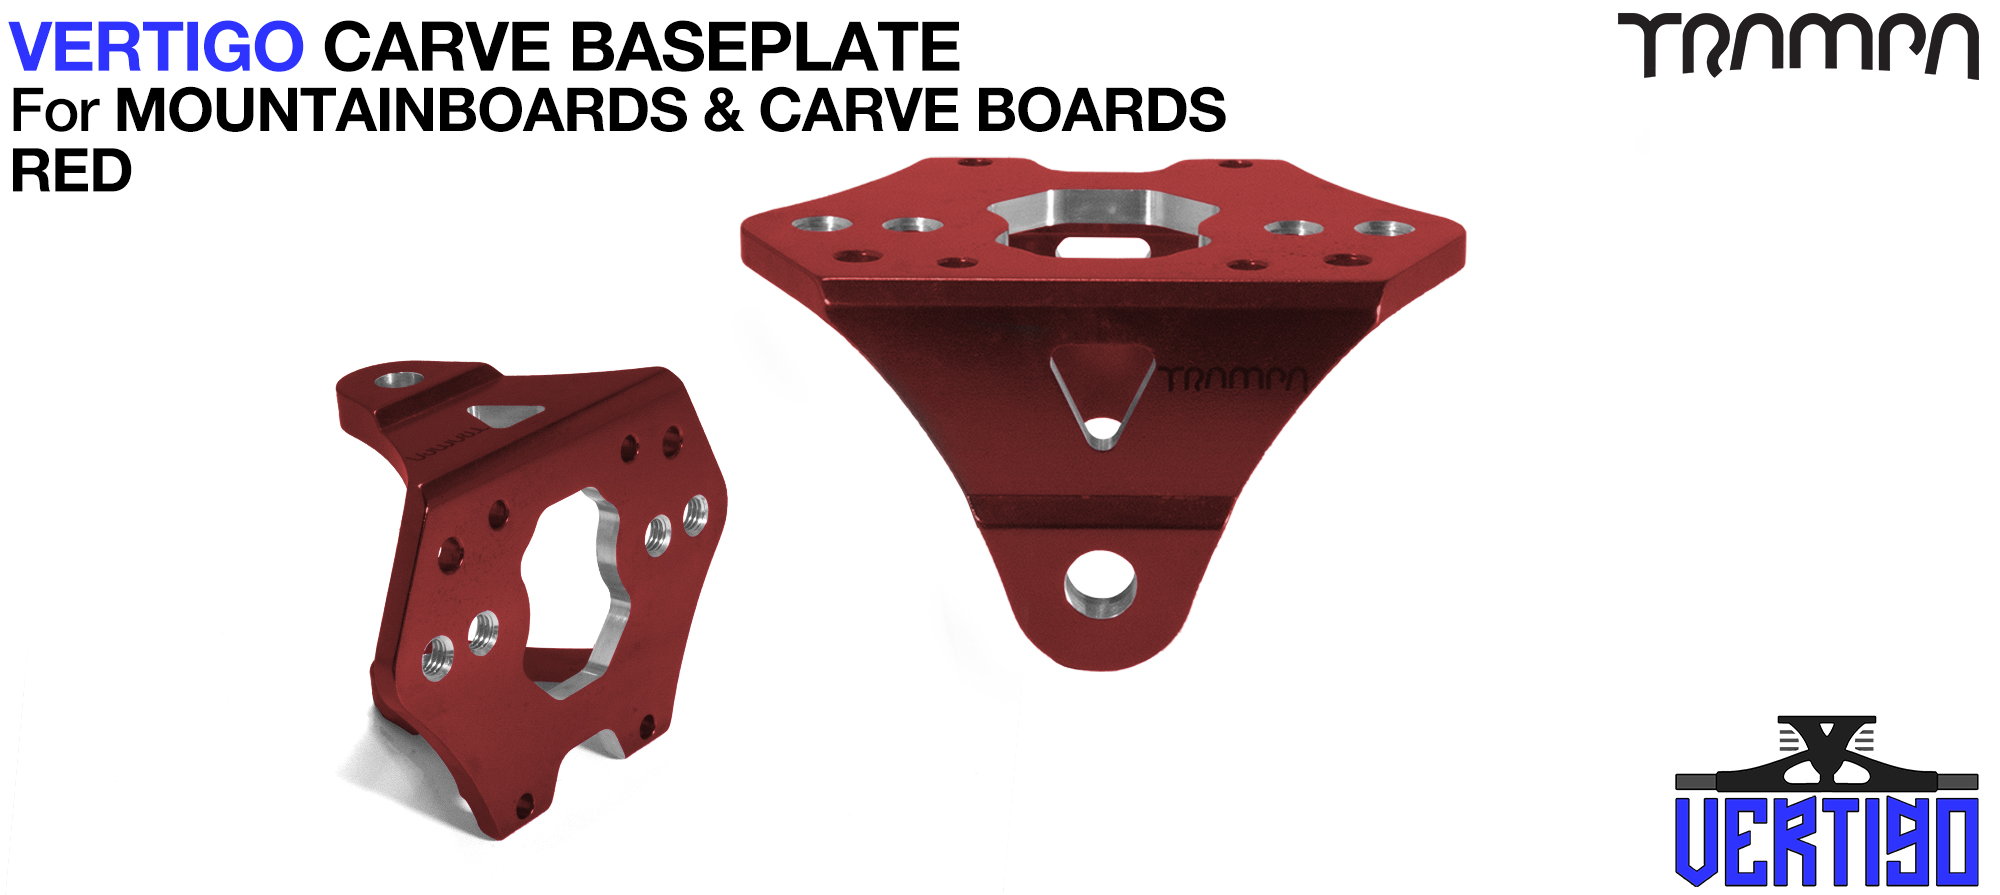 VERTIGO CARVE Baseplate RED - T6 Aluminum Powder coated & CNC lightened - Black logo